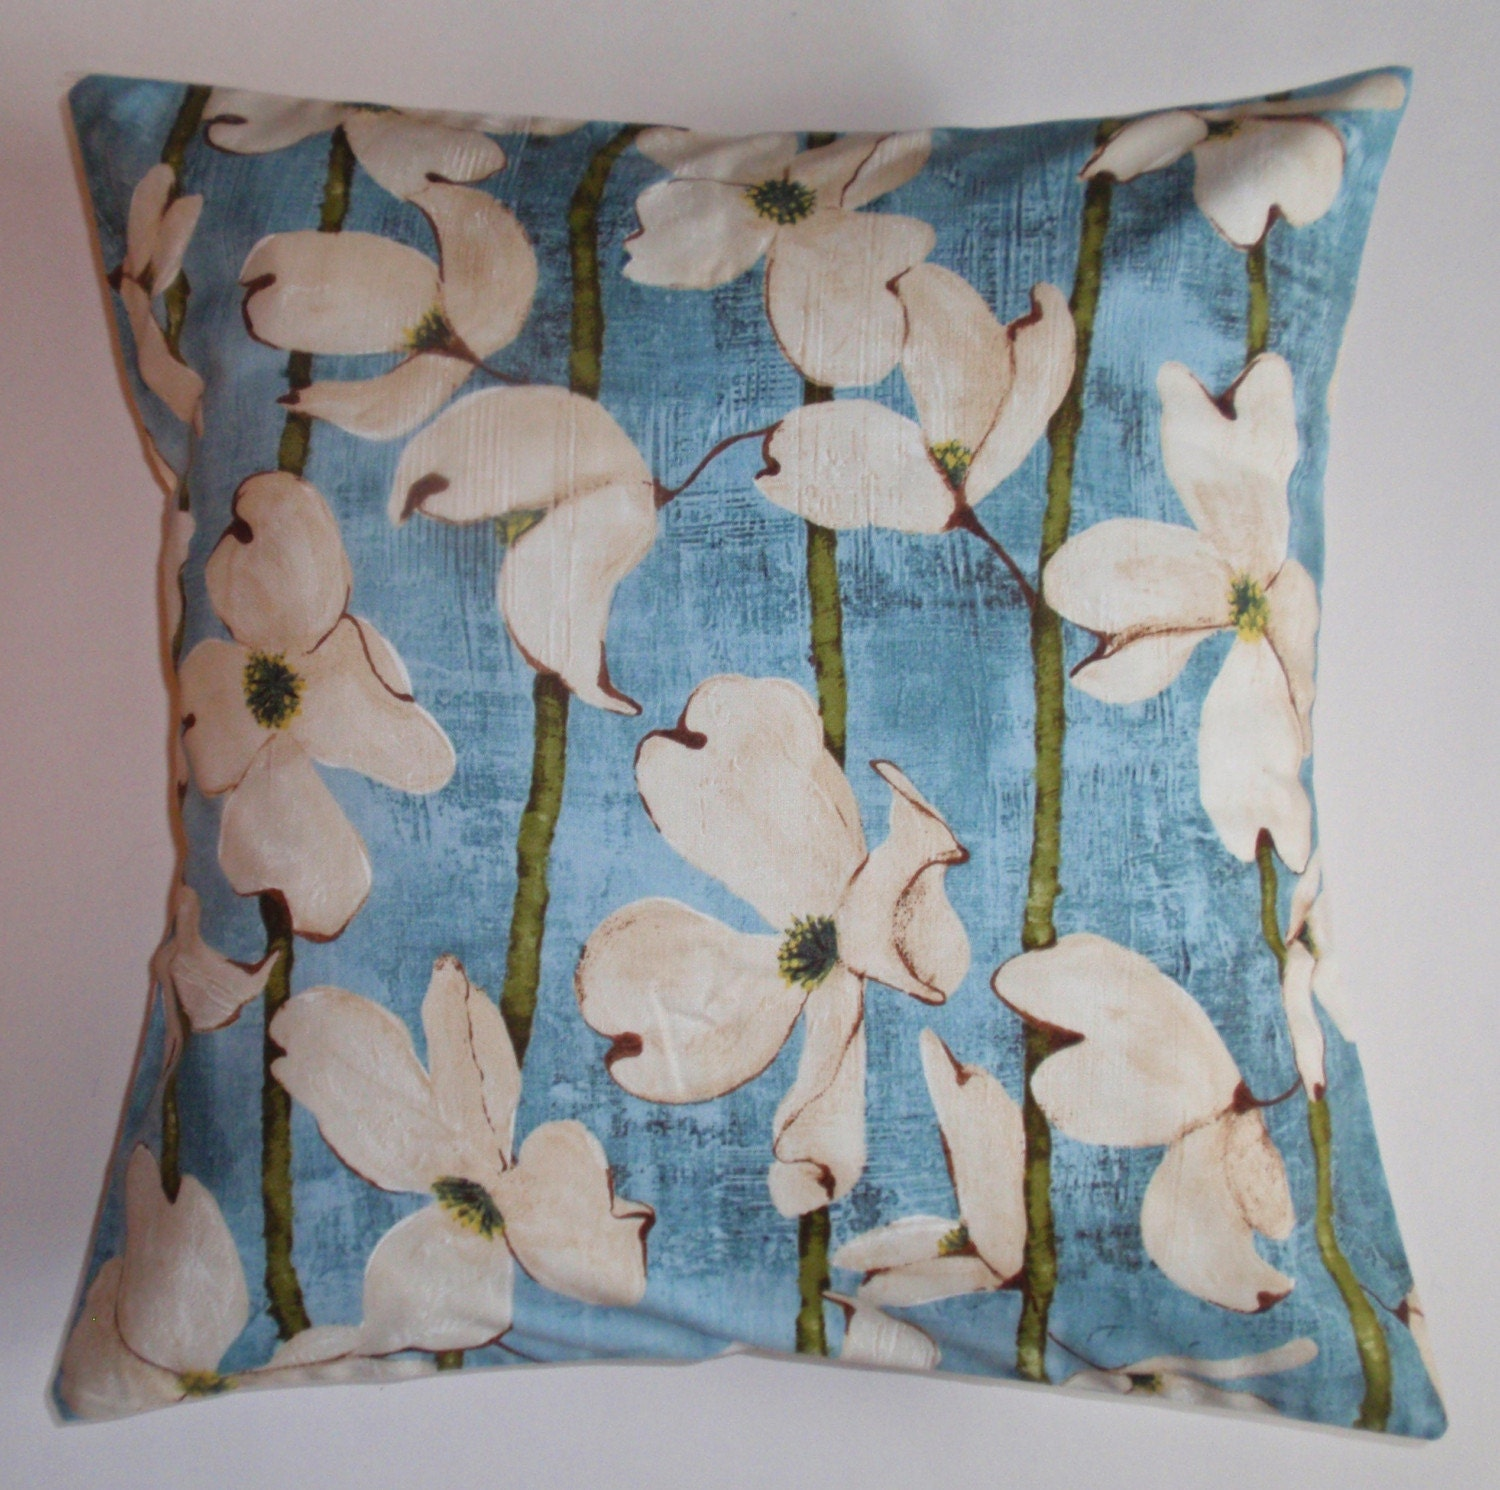 Throw Pillow With Removable Cover : Throw Pillow 16x16 Removable cover sewn with Laura Gunn s